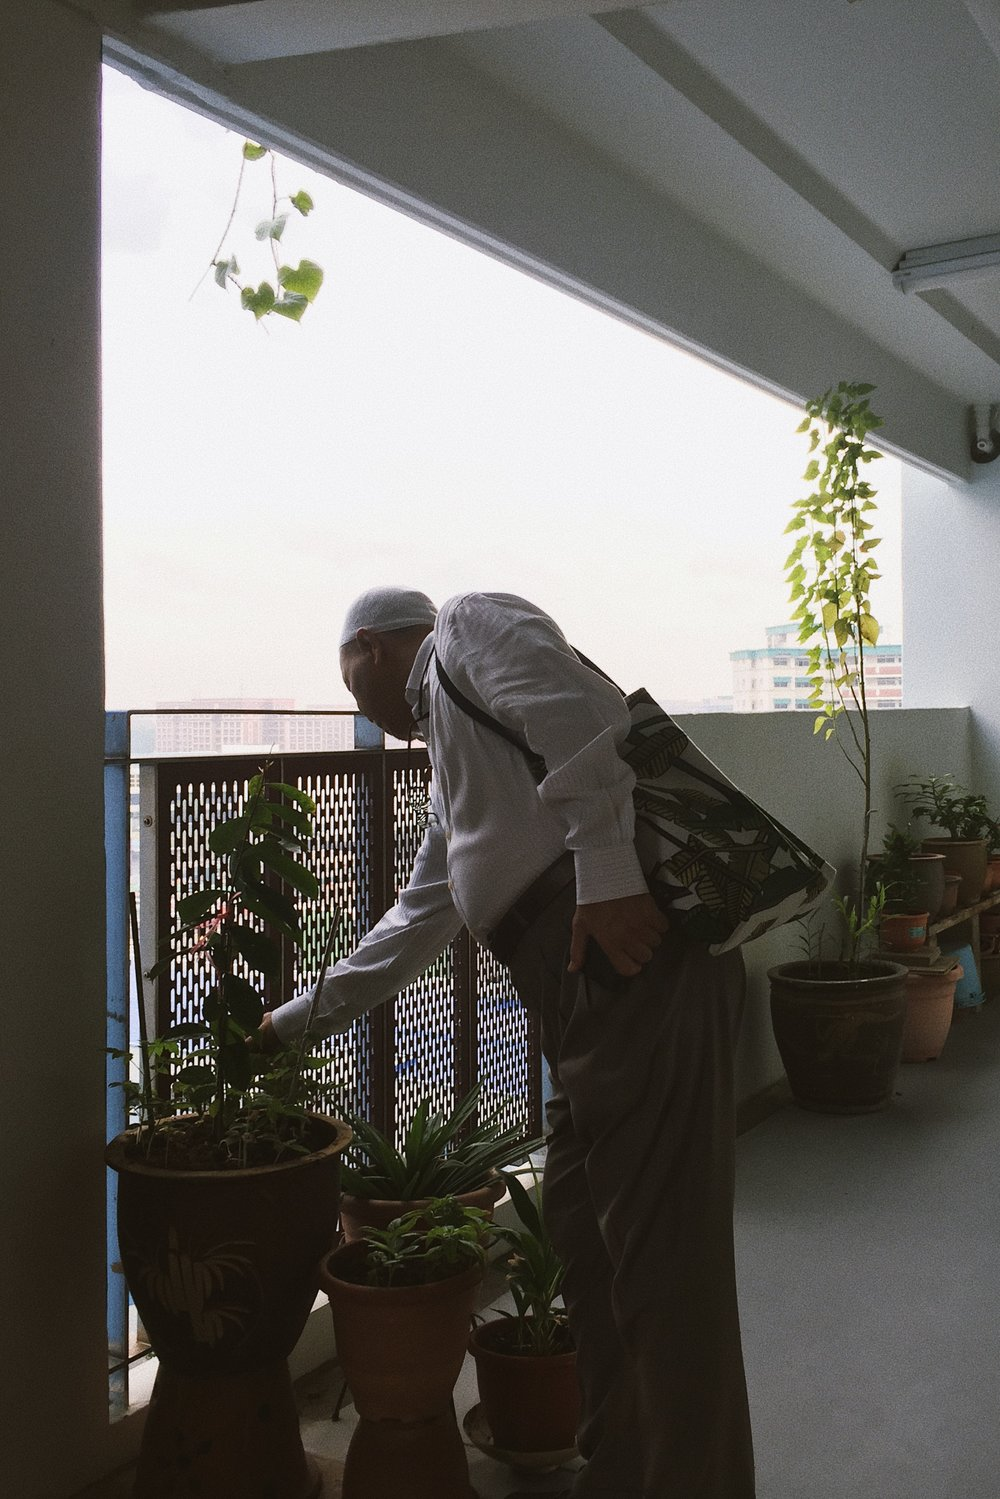 Dad leaving for work and looking at the beauts that are his potted plant. #agfavista800